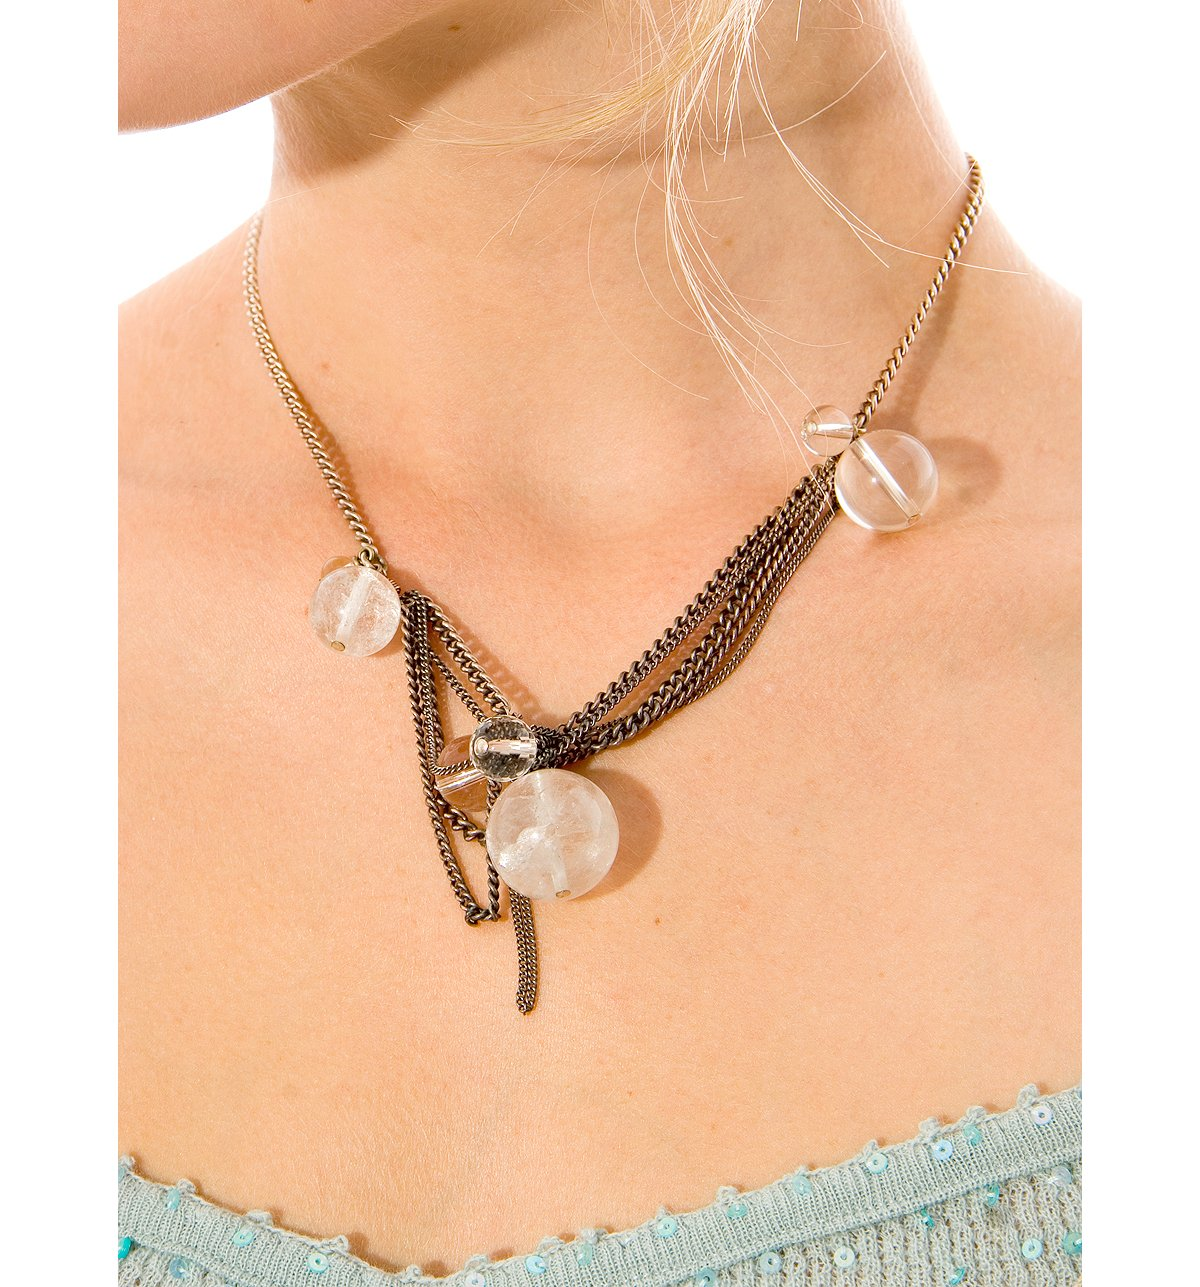 Kirt Holmes Rock Crystal Bauble Chain Necklace